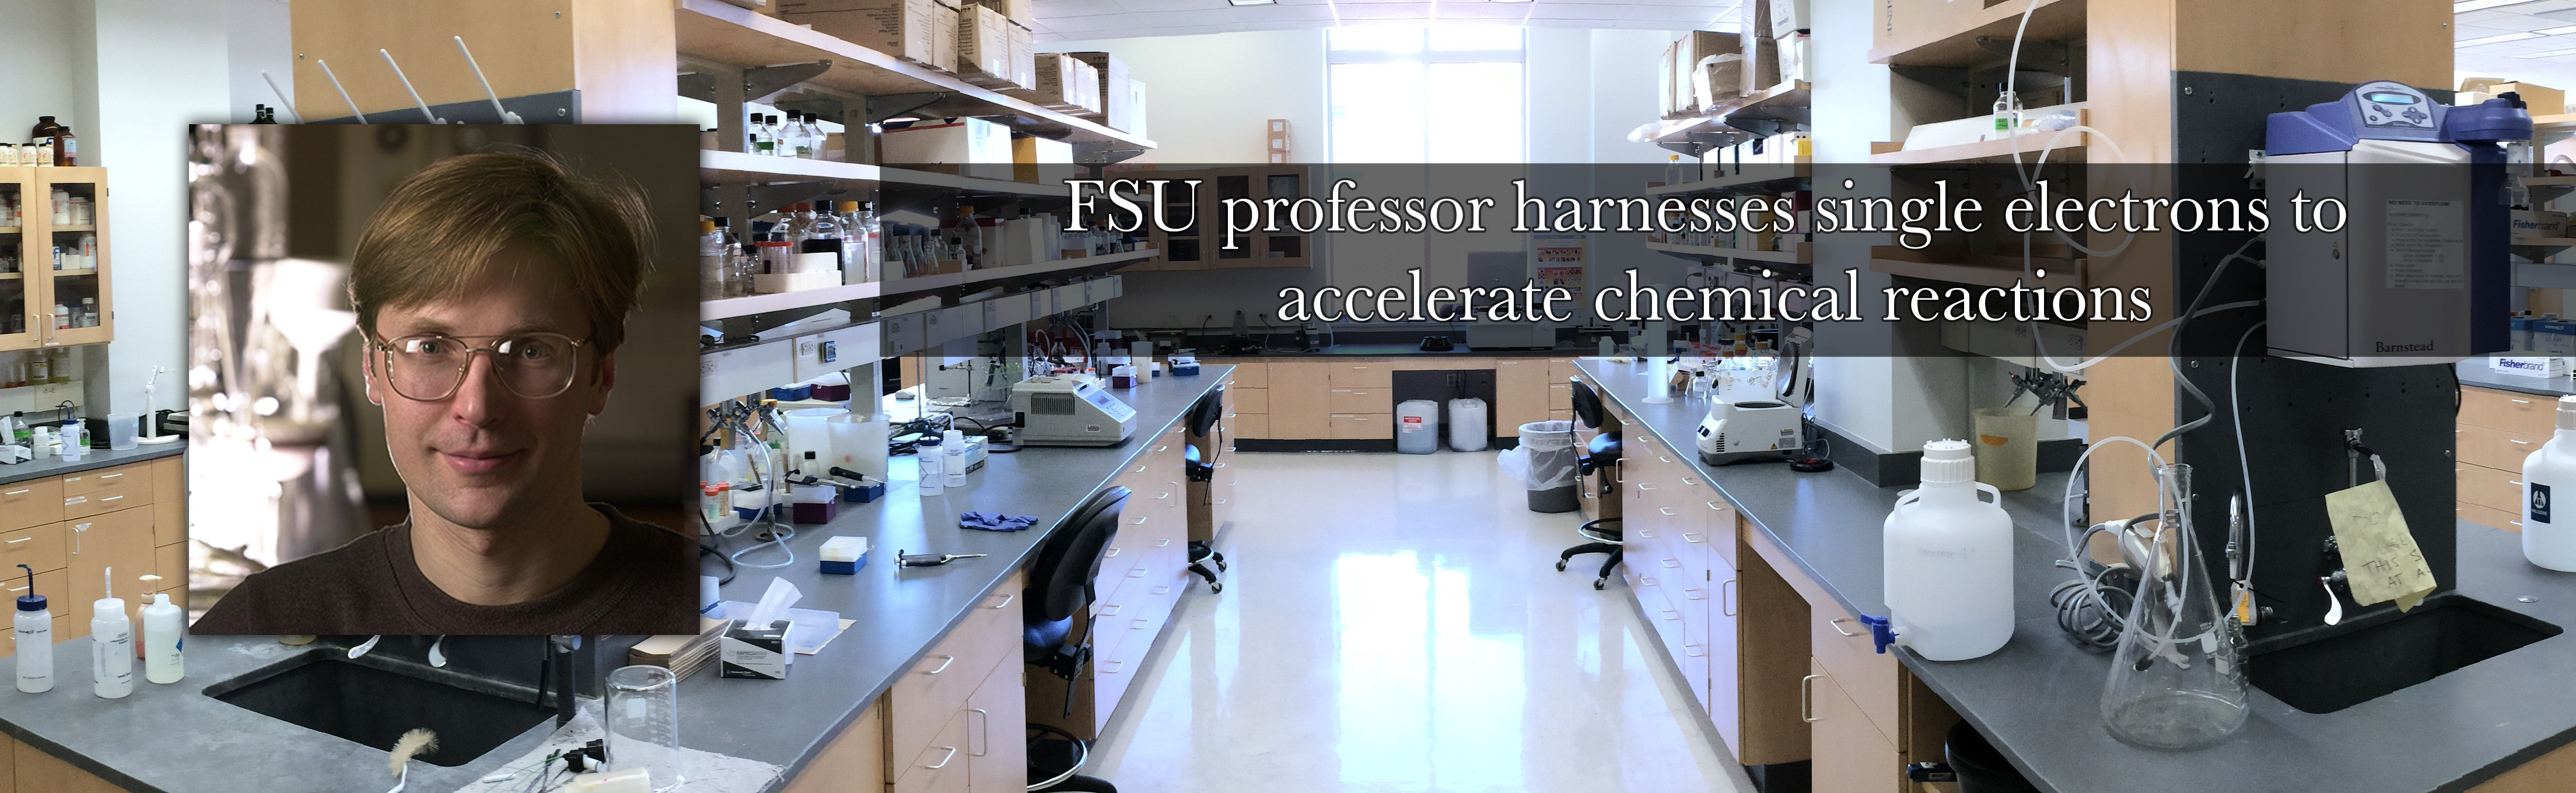 FSU professor harnesses single electrons to accelerate chemical reactions